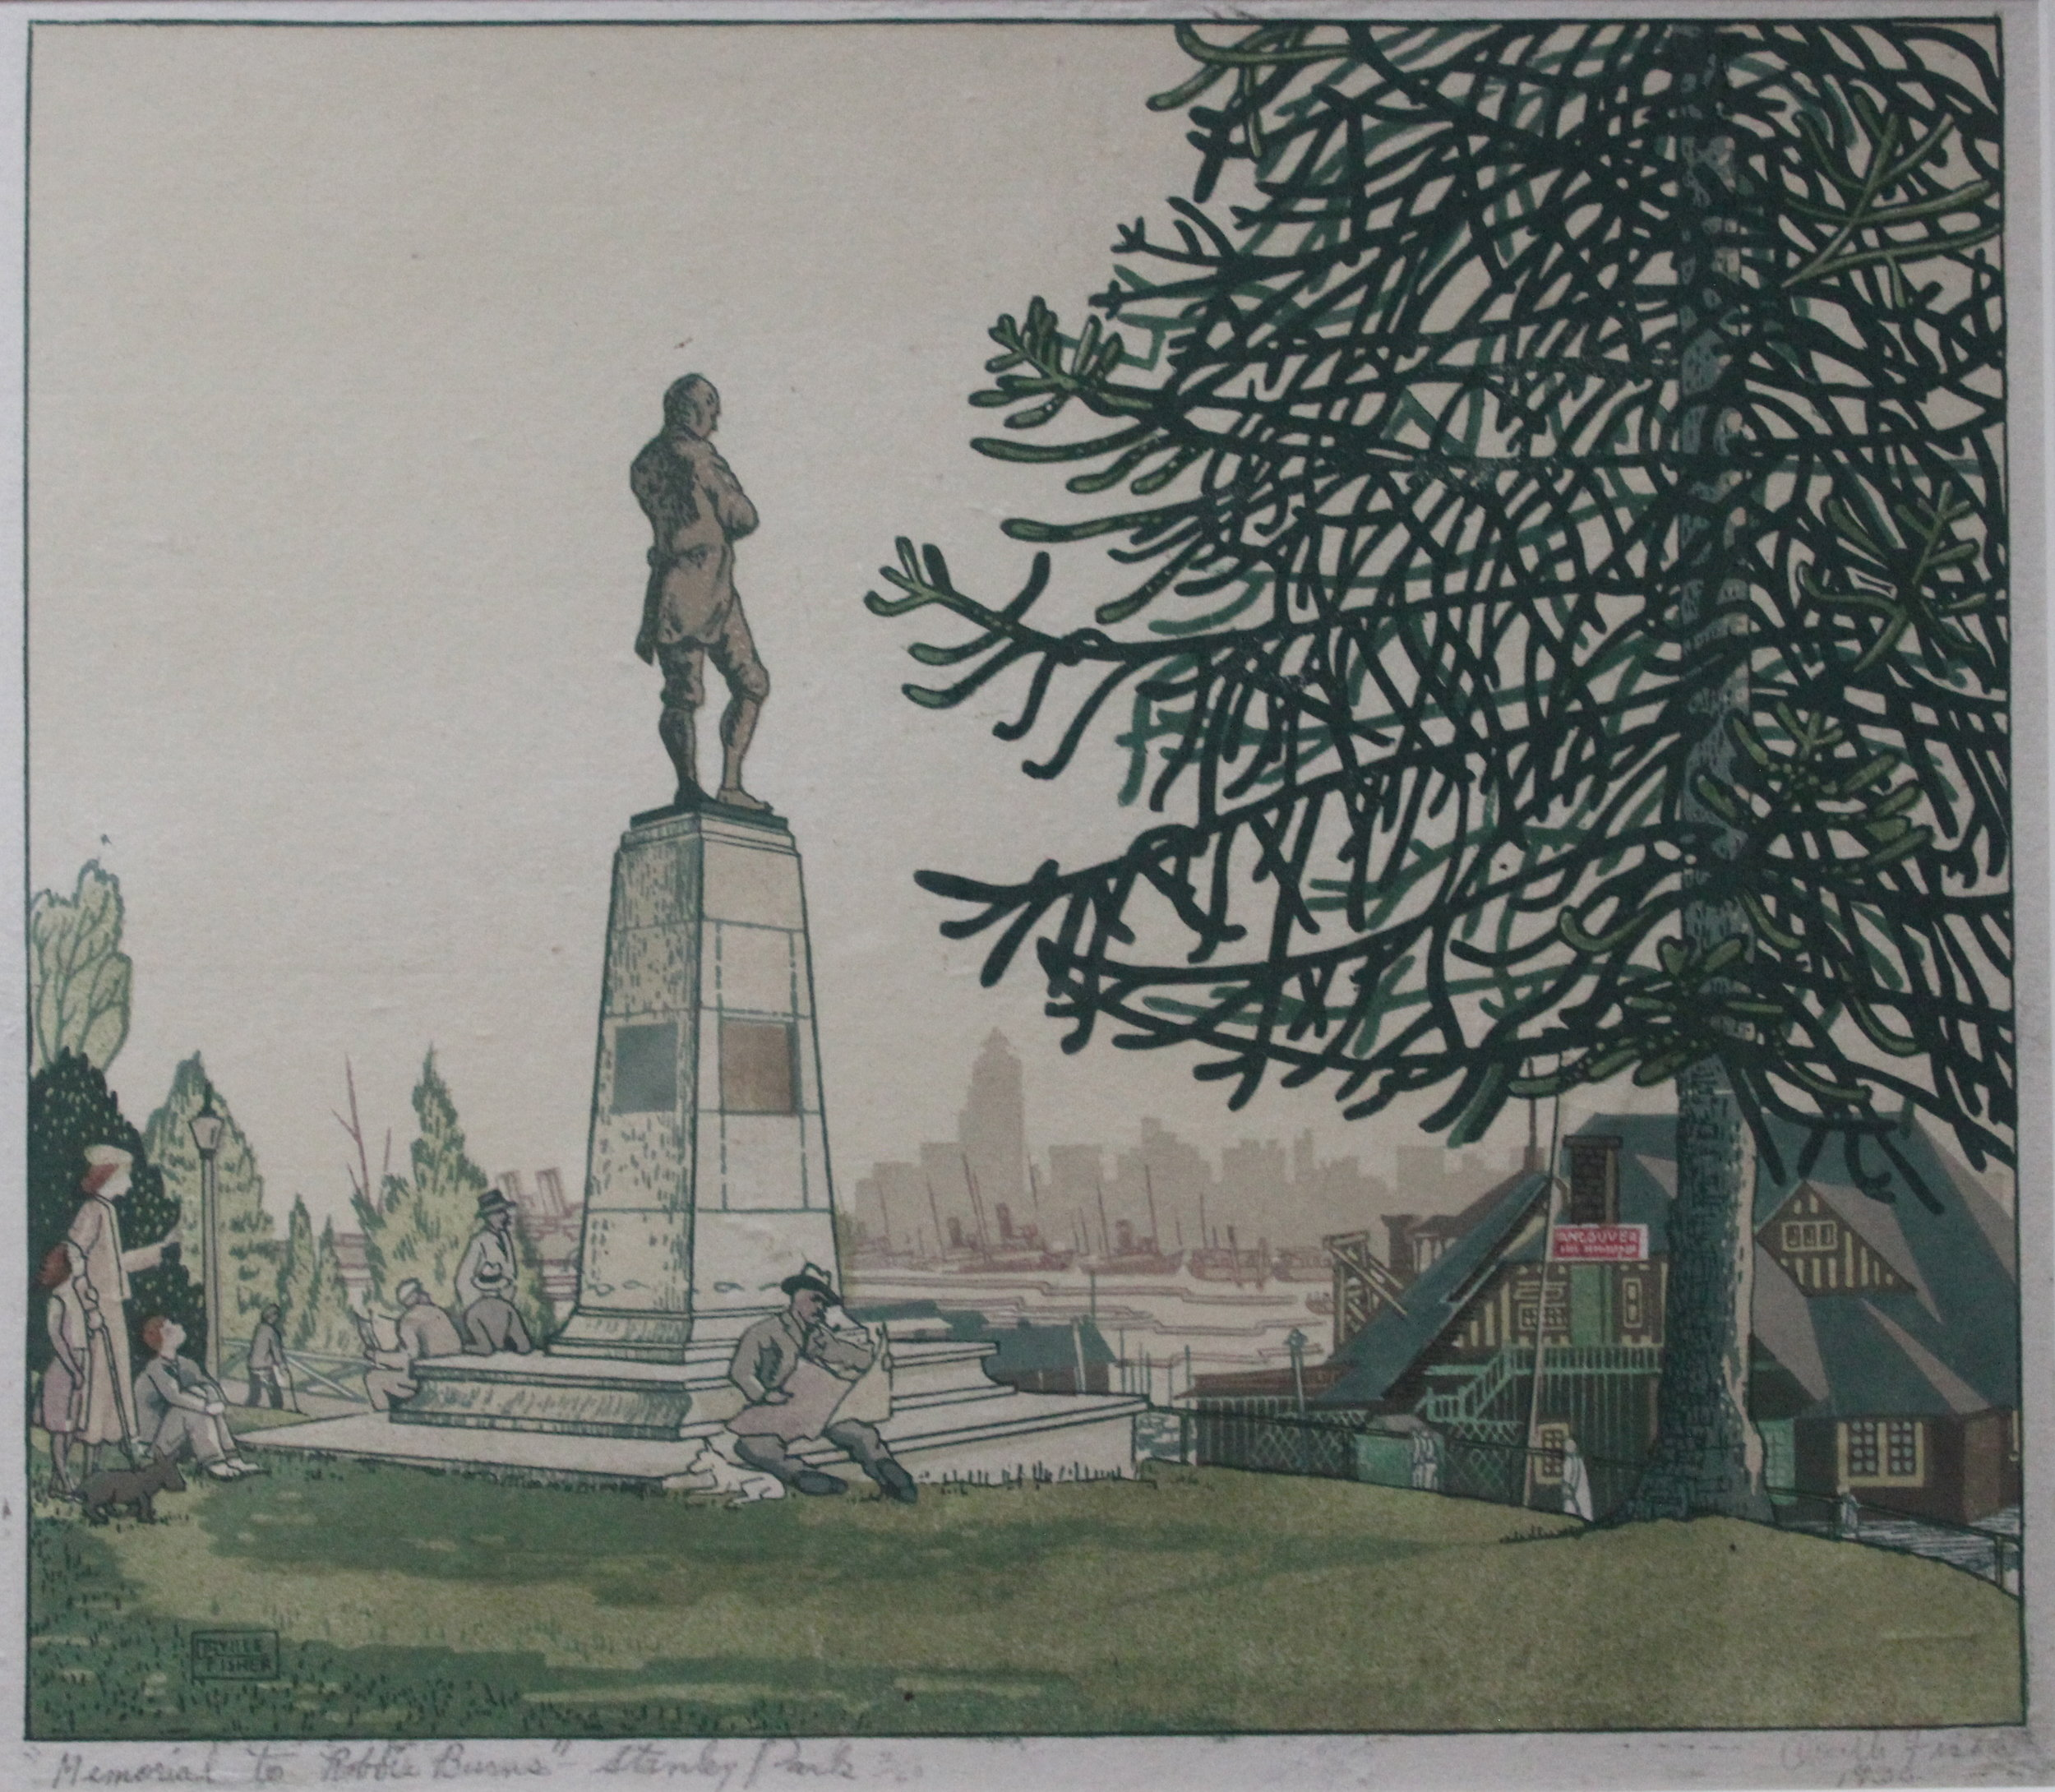 Orville Fisher, Memorial to Robbie Burns, Stanley Park, 1936